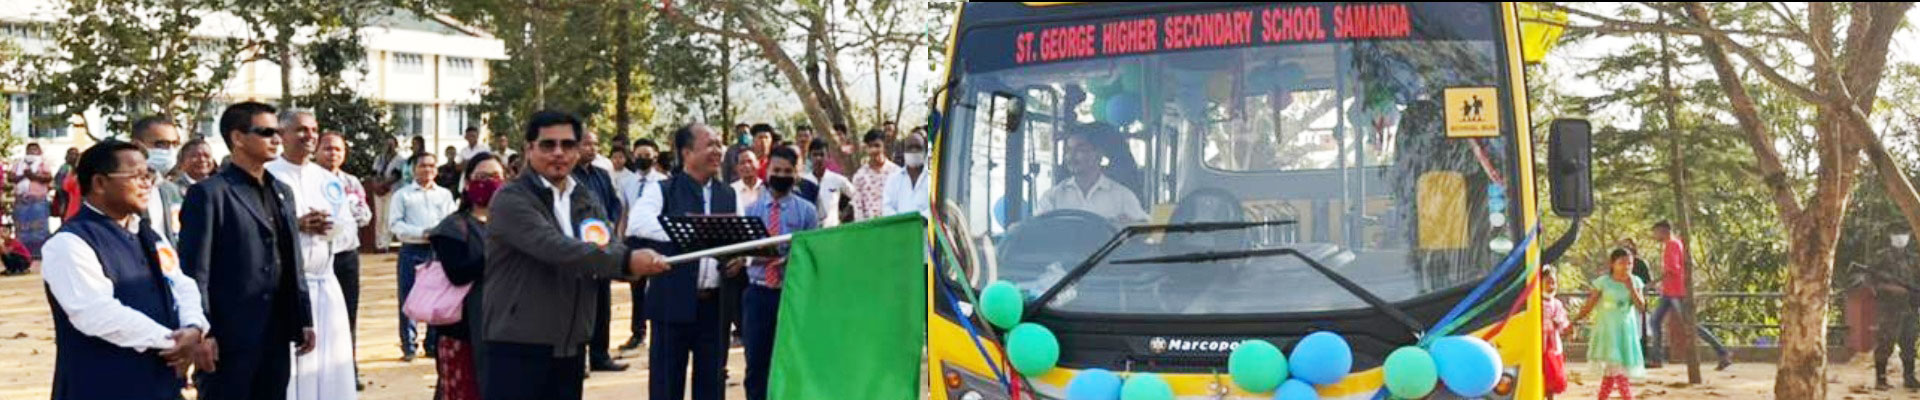 CM flagged-off the New School Bus of St. George School at Samanda